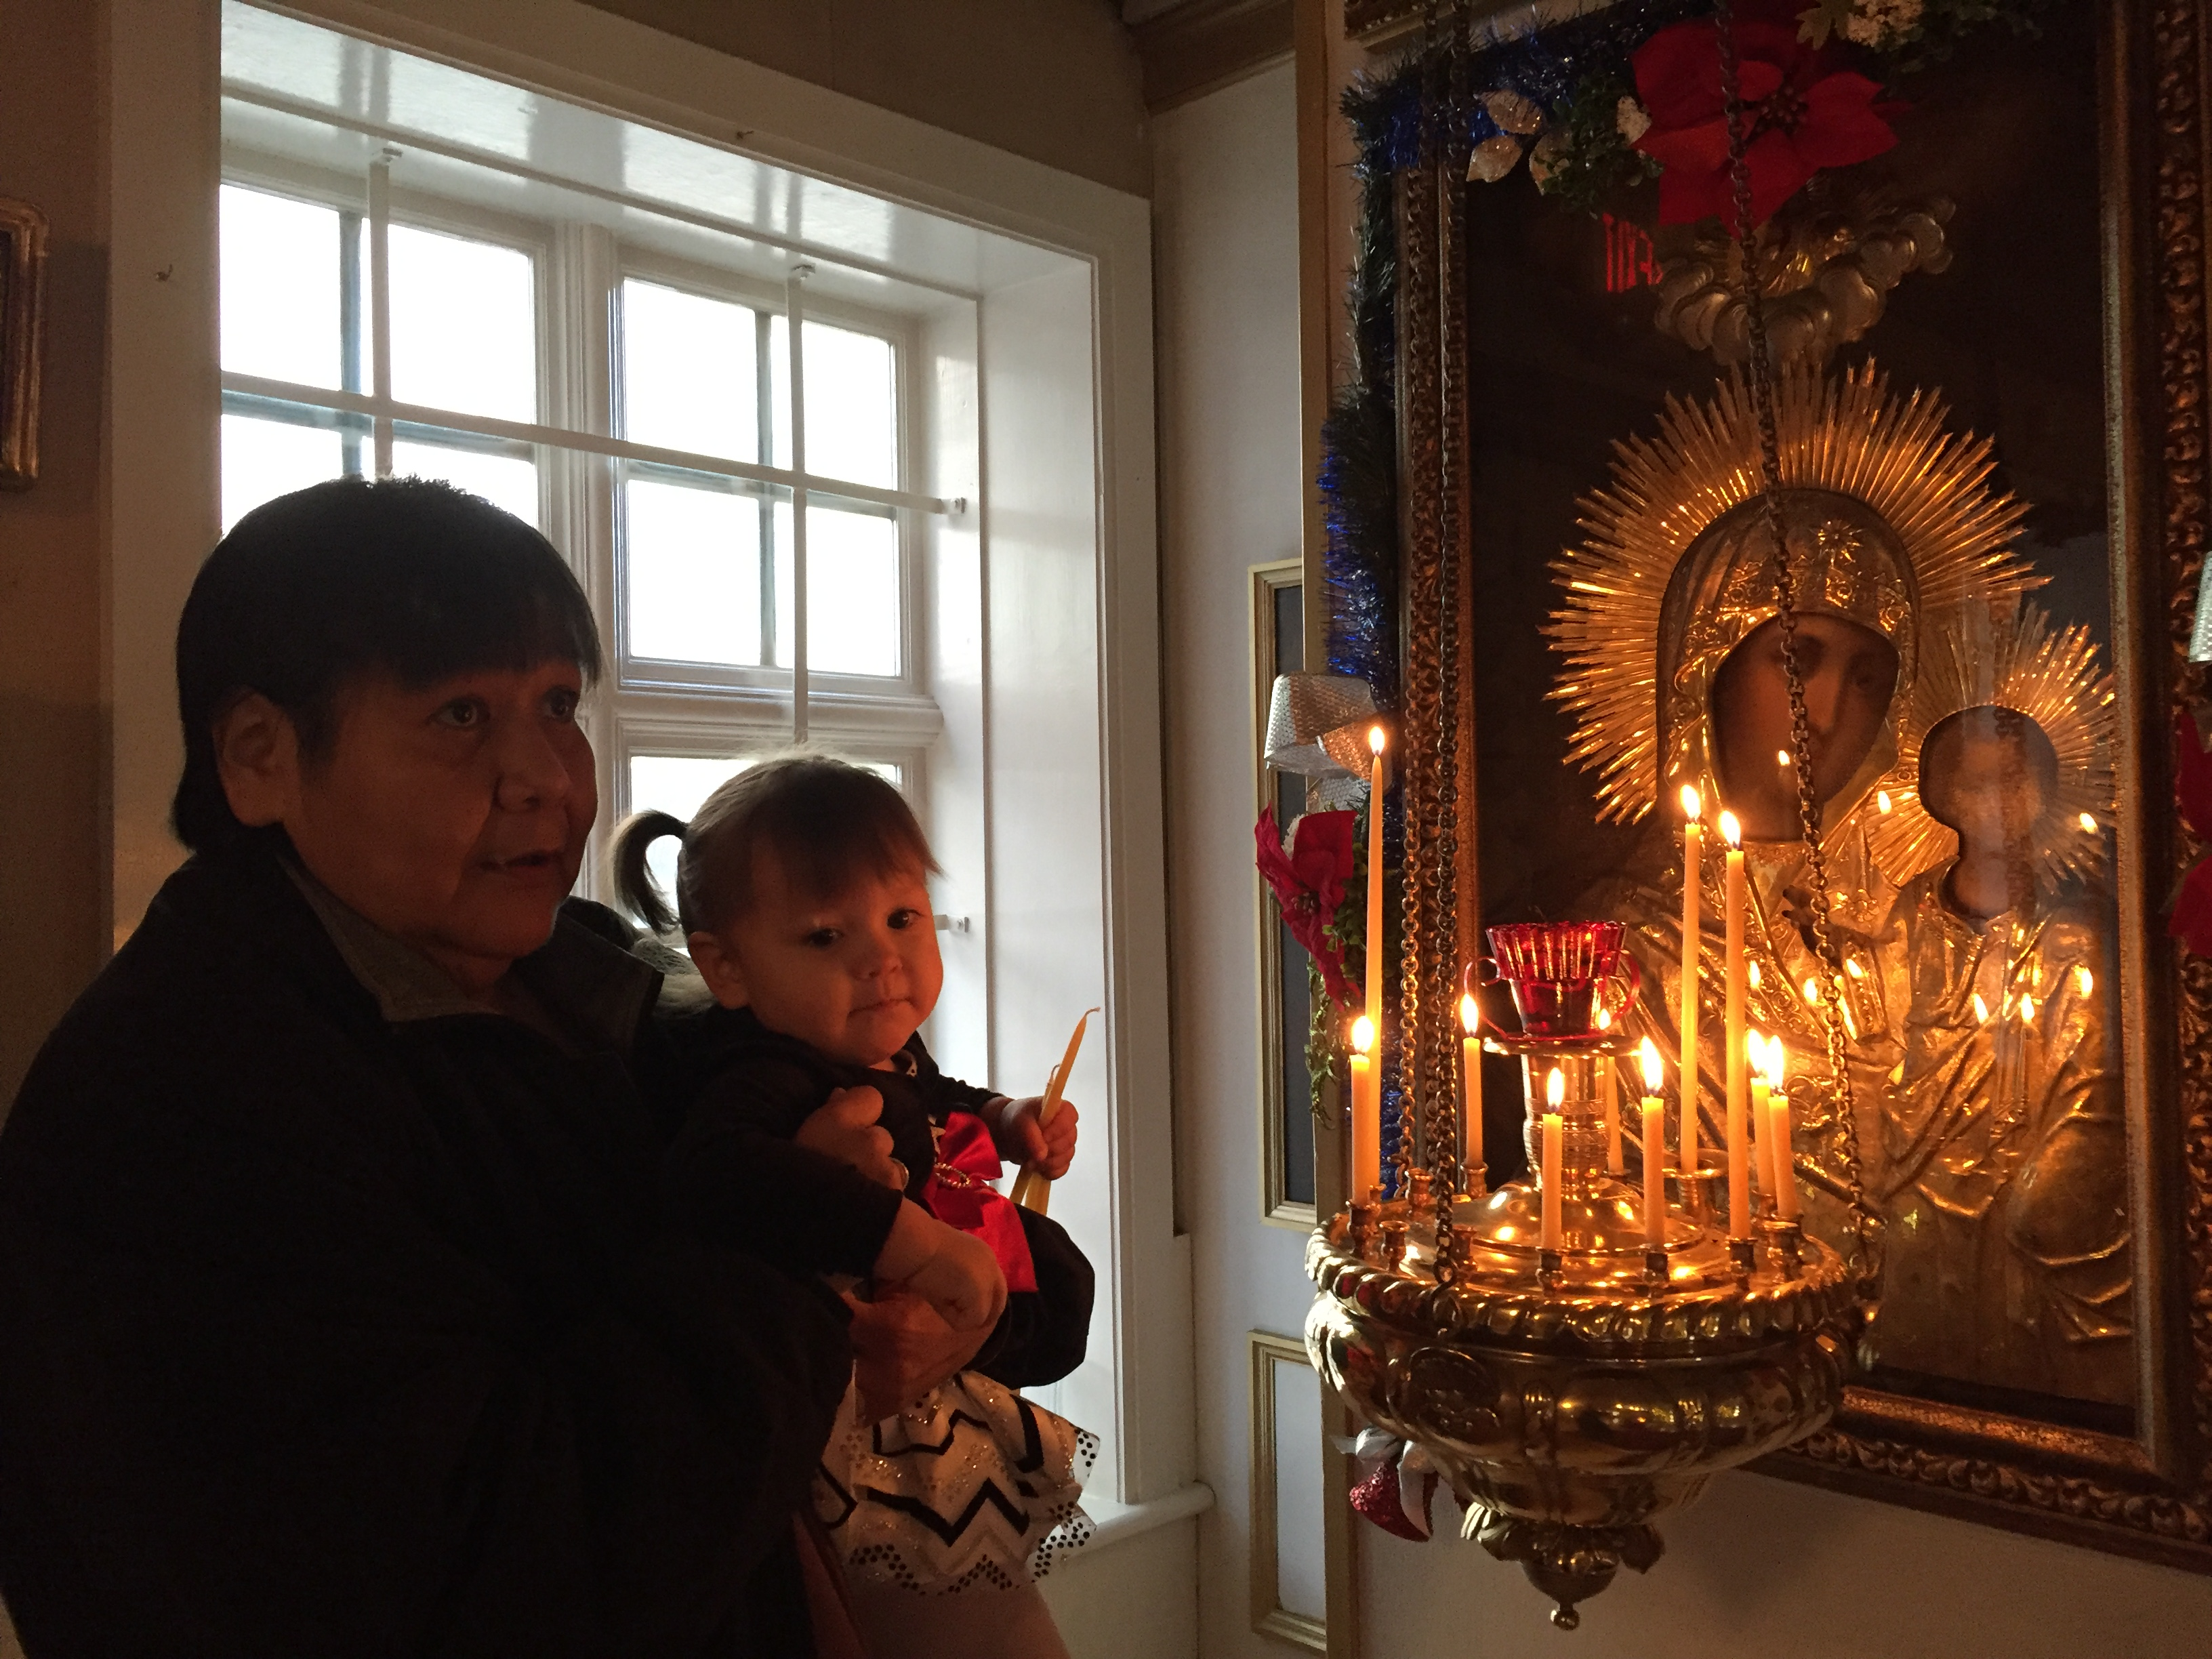 Sitkans gather for Orthodox Christmas